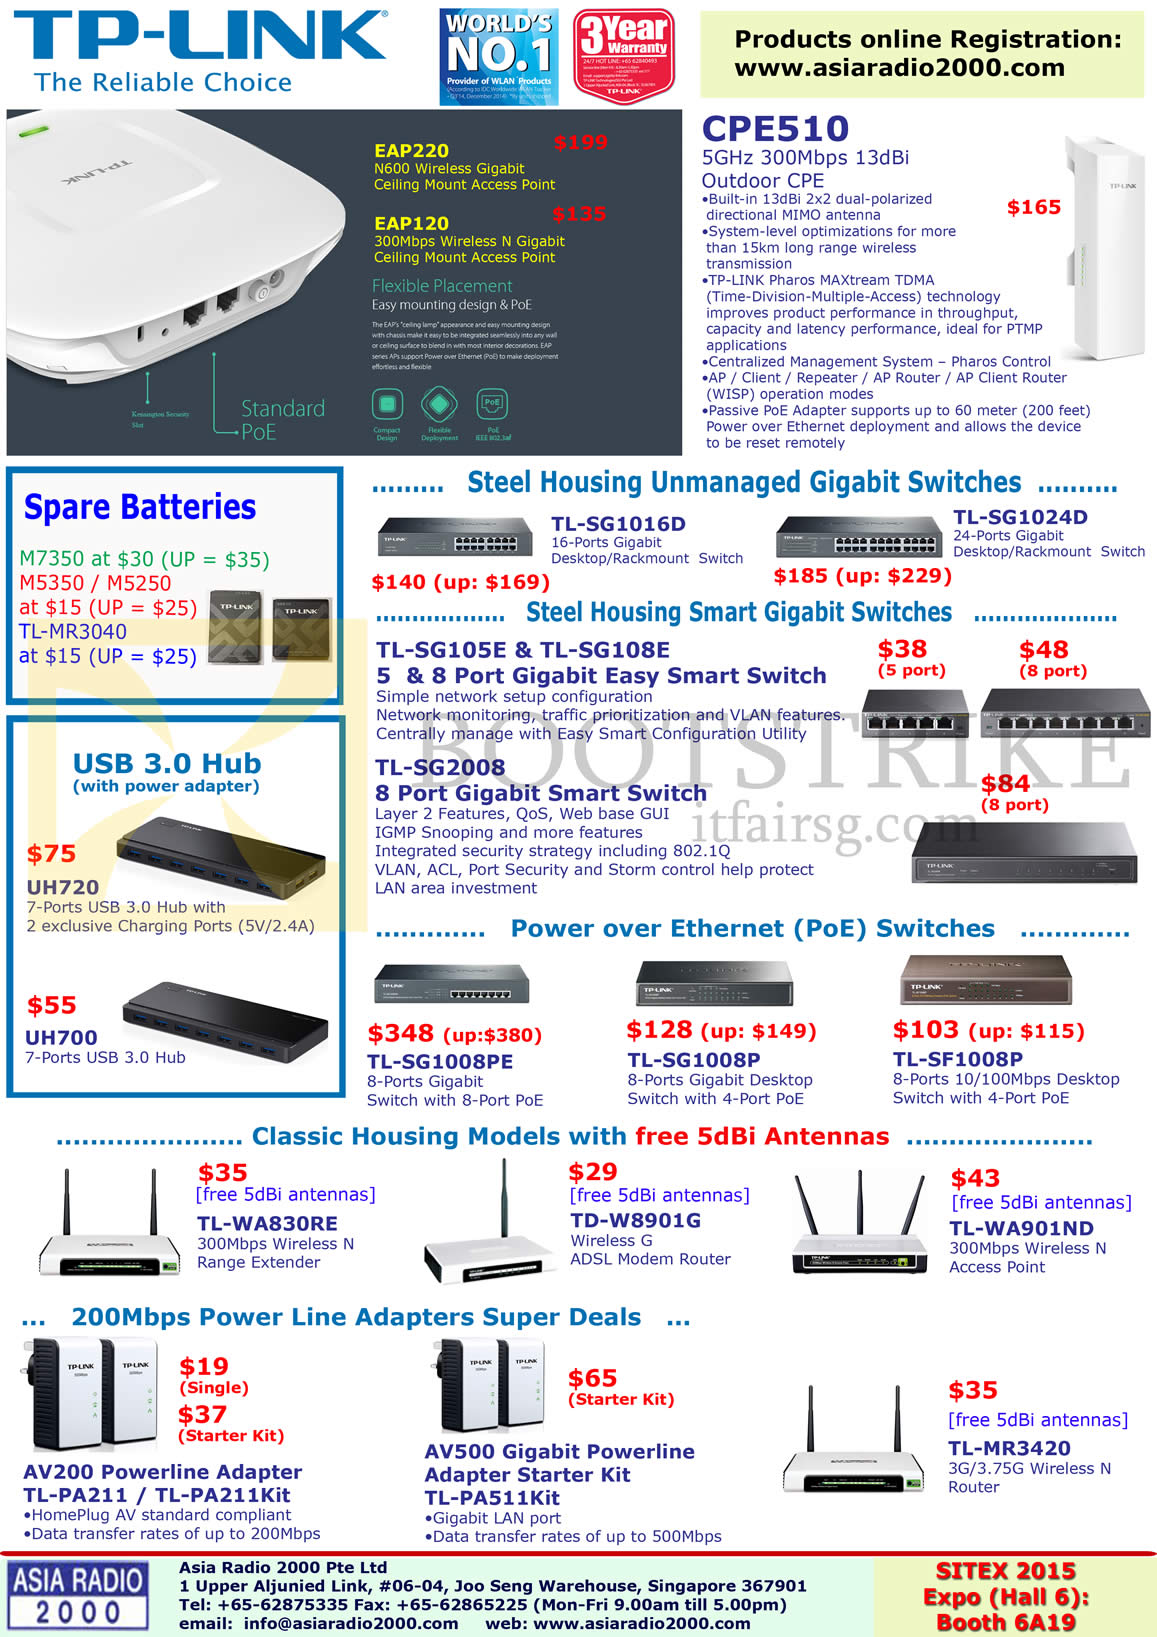 SITEX 2015 price list image brochure of Asia Radio TP-Link Networking Gigabit Switches, CPE510, TL-SG1016D, SG1024D, SG105E, 108E, 2008, 1008PE, 1008P, SF1008P, WA830RE, W8901G, AV200, AV500, TL-MR3420